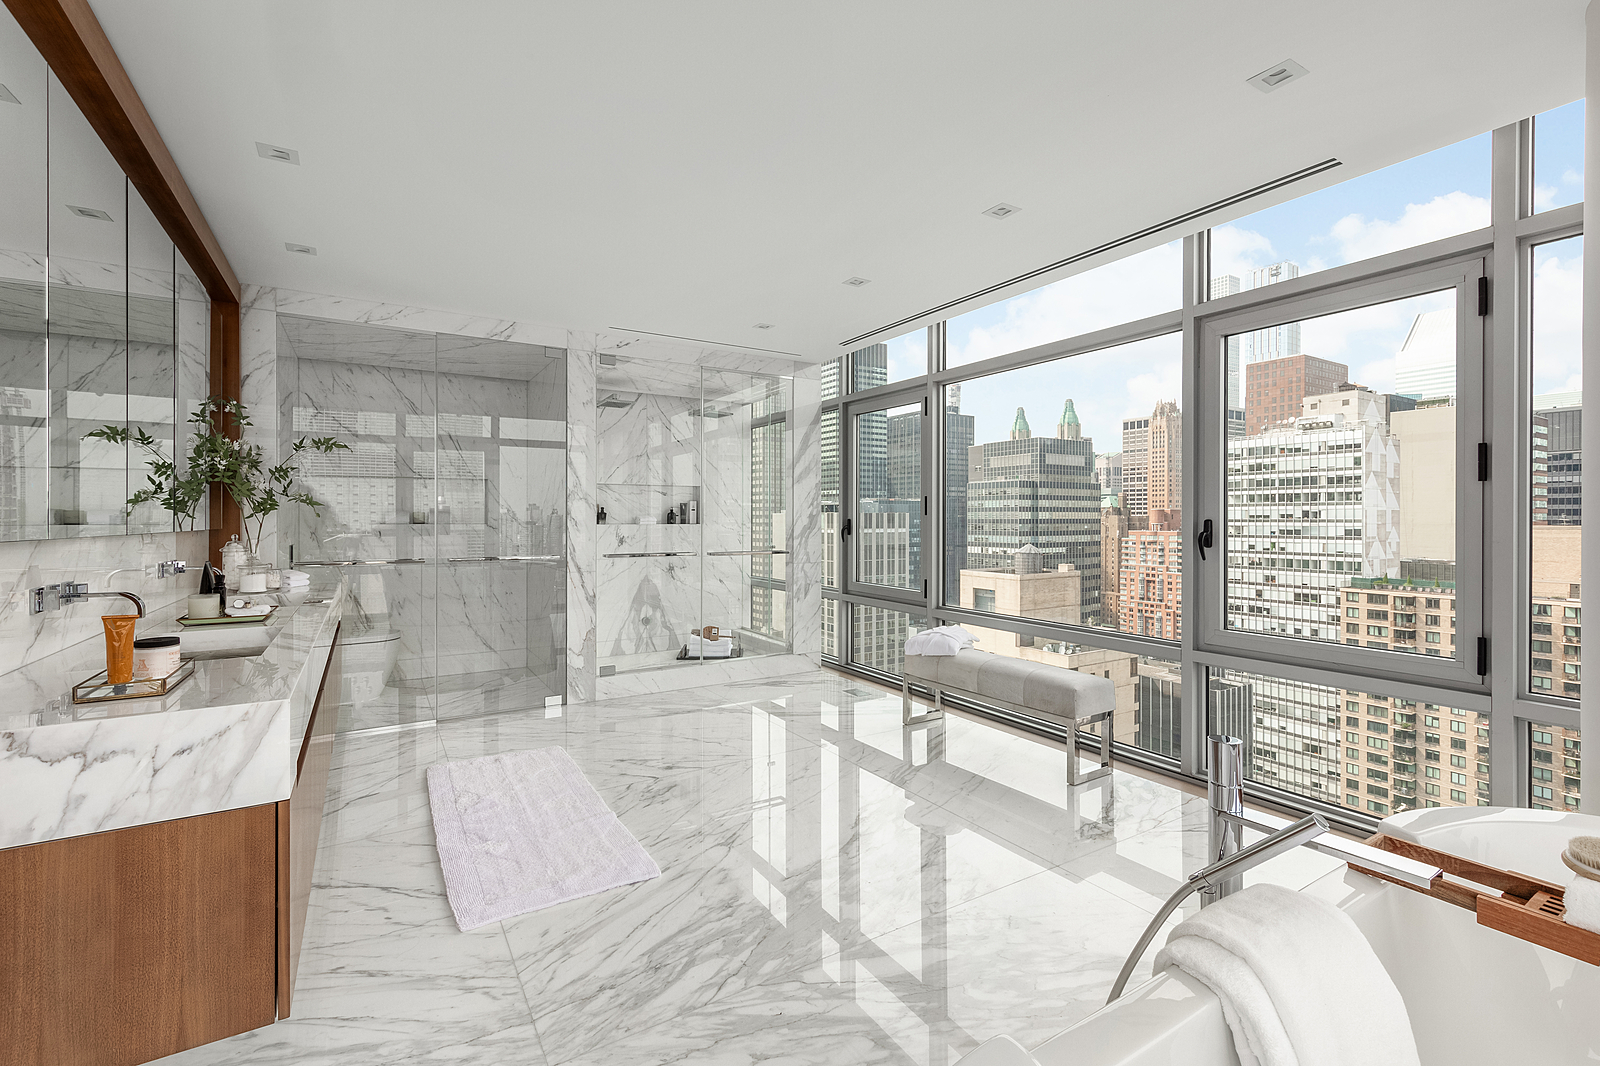 219East44thStreetPH-MidtownNewYork_Aaron_Ross_DouglasElliman_Photography_83045164_high_res